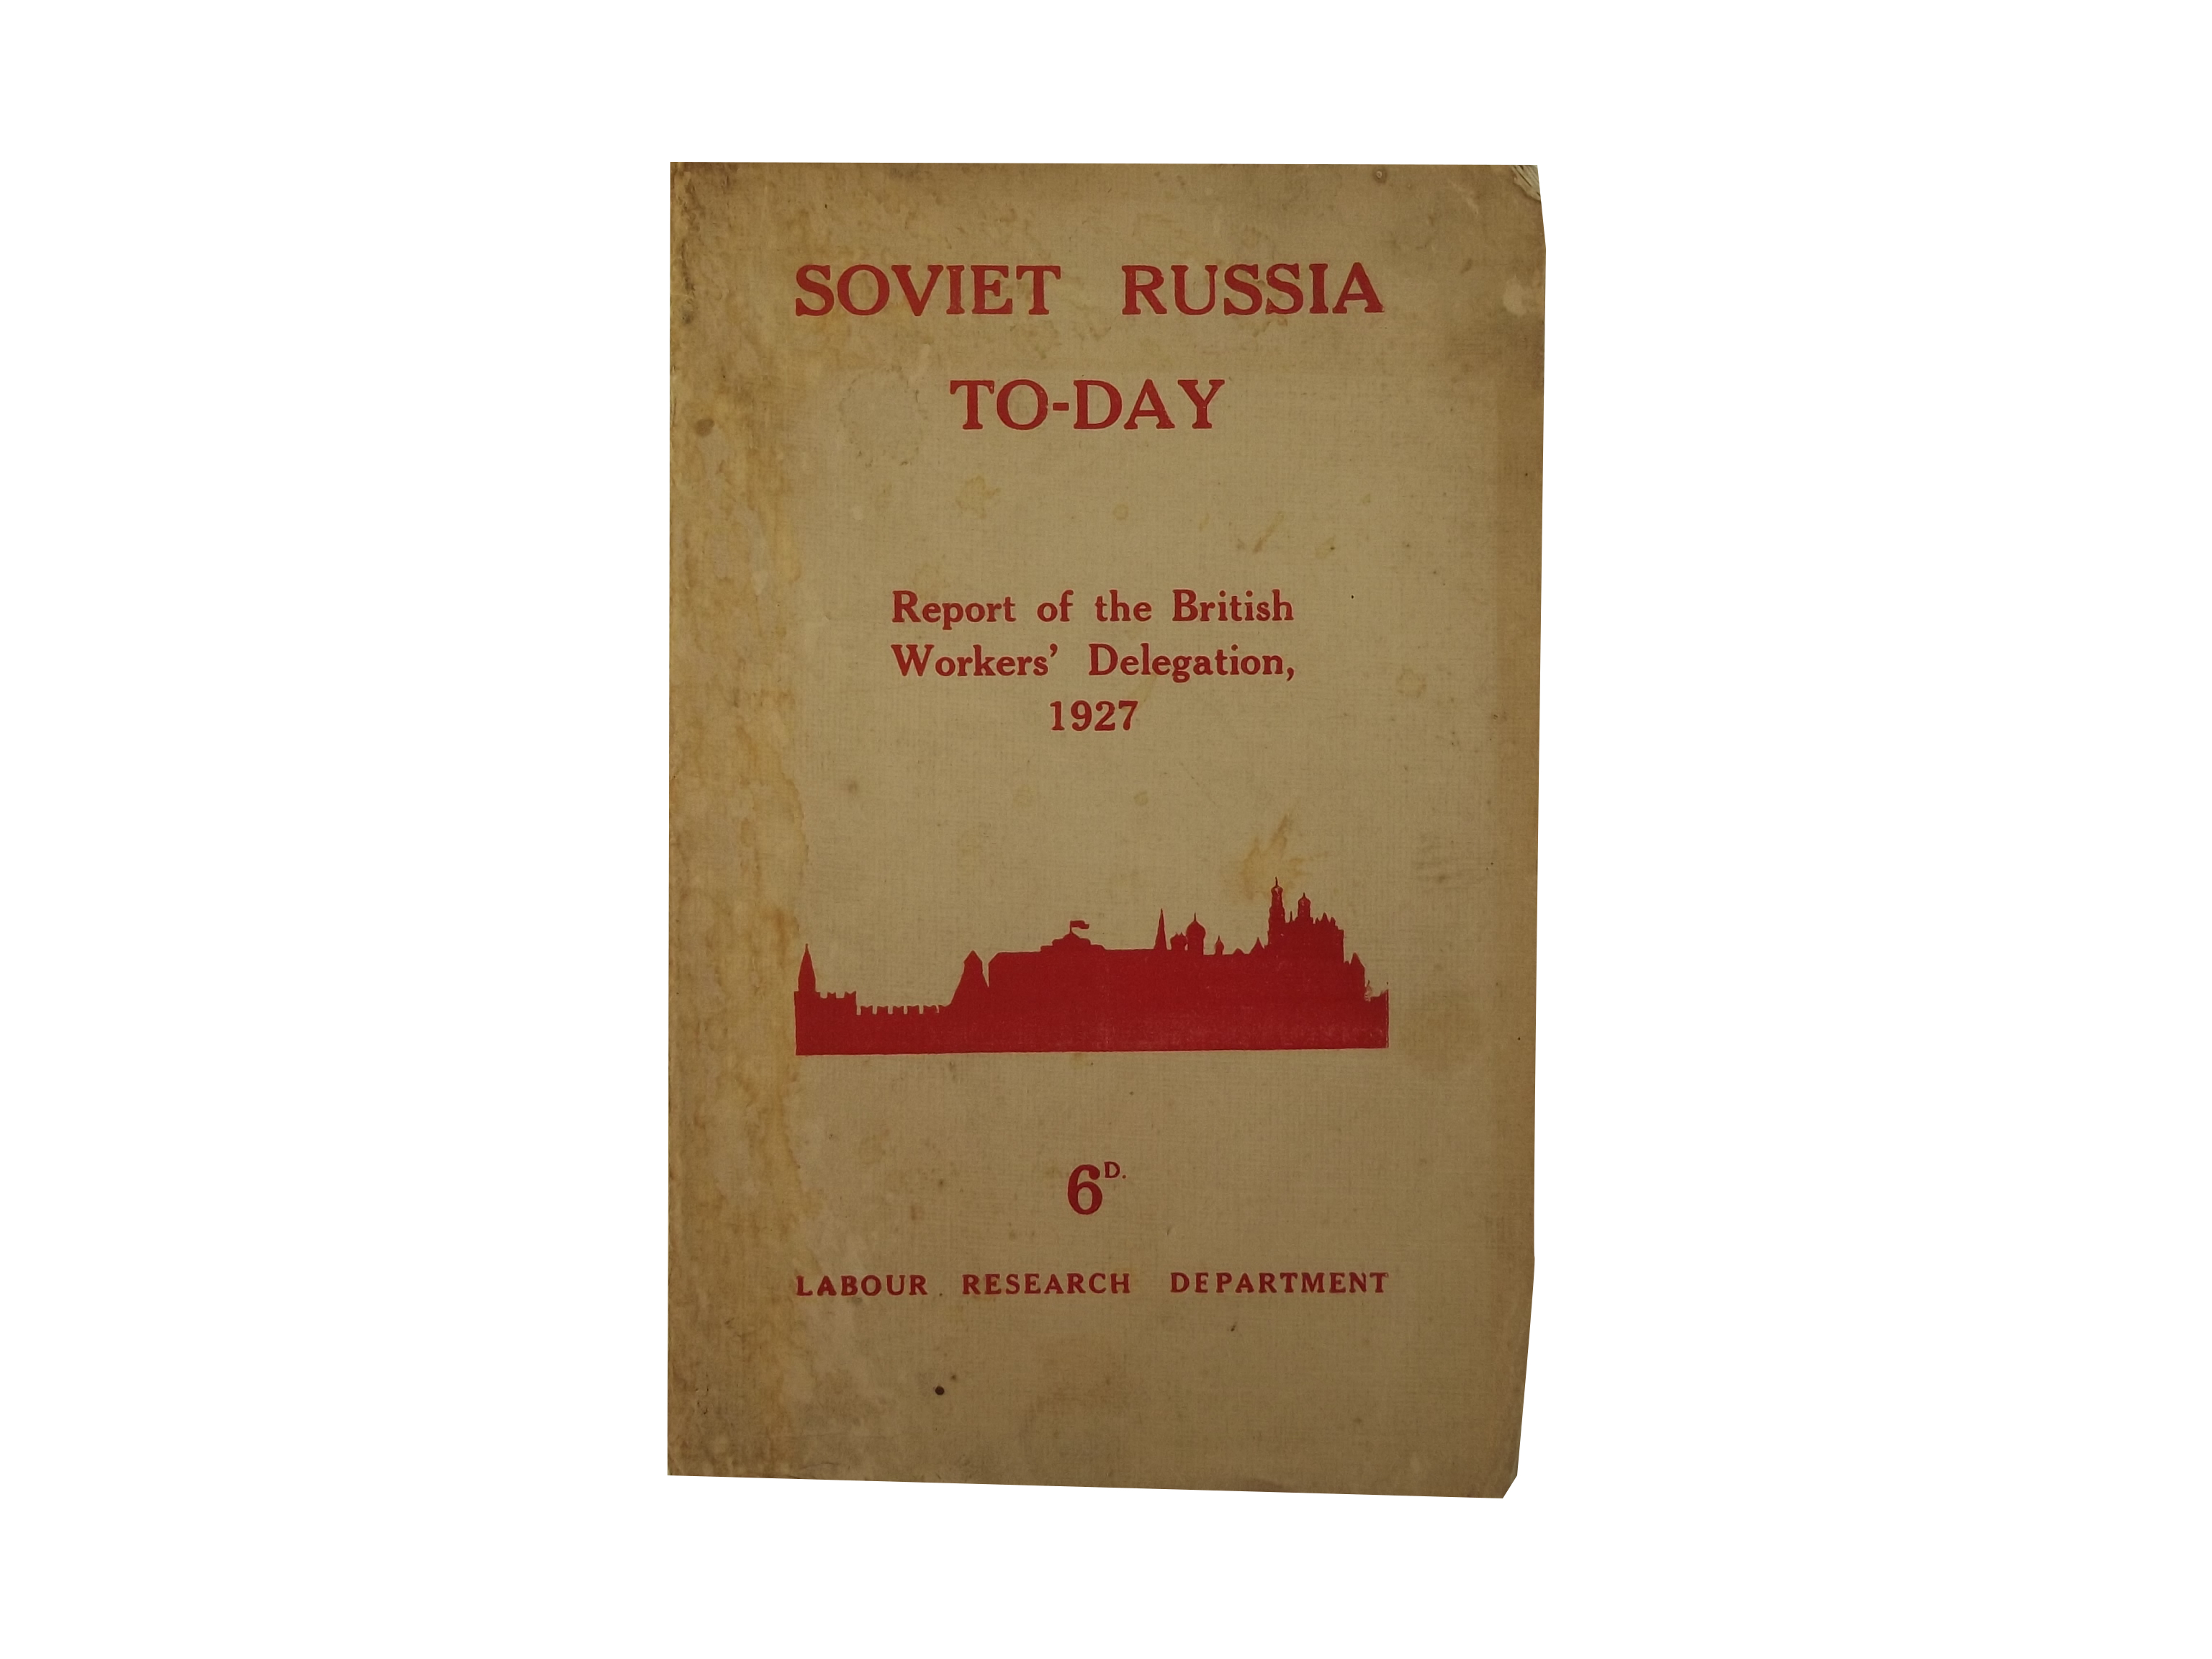 Soviet Russia To-Day